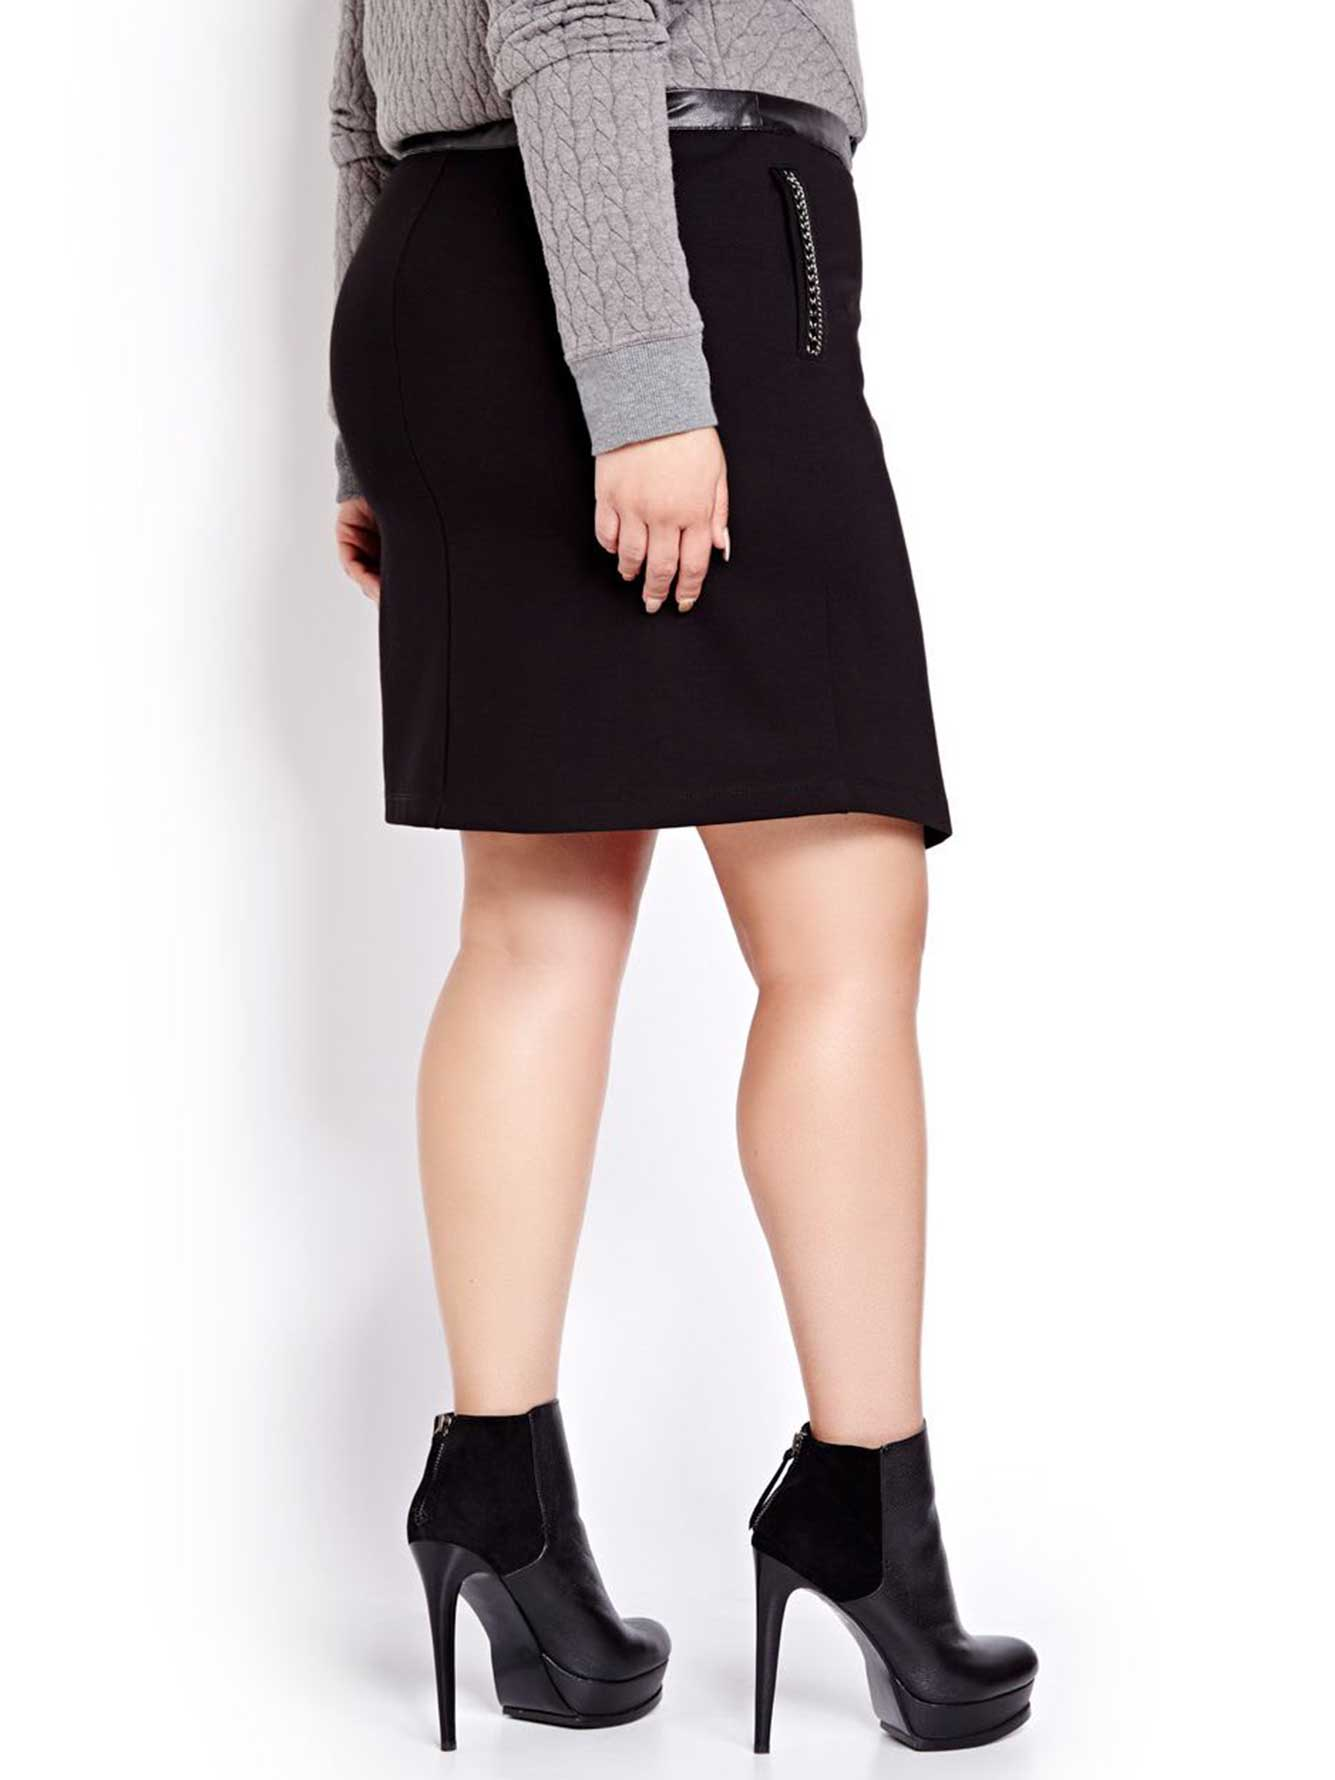 Nadia Aboulhosn Asymmetric Zip Skirt for L&L